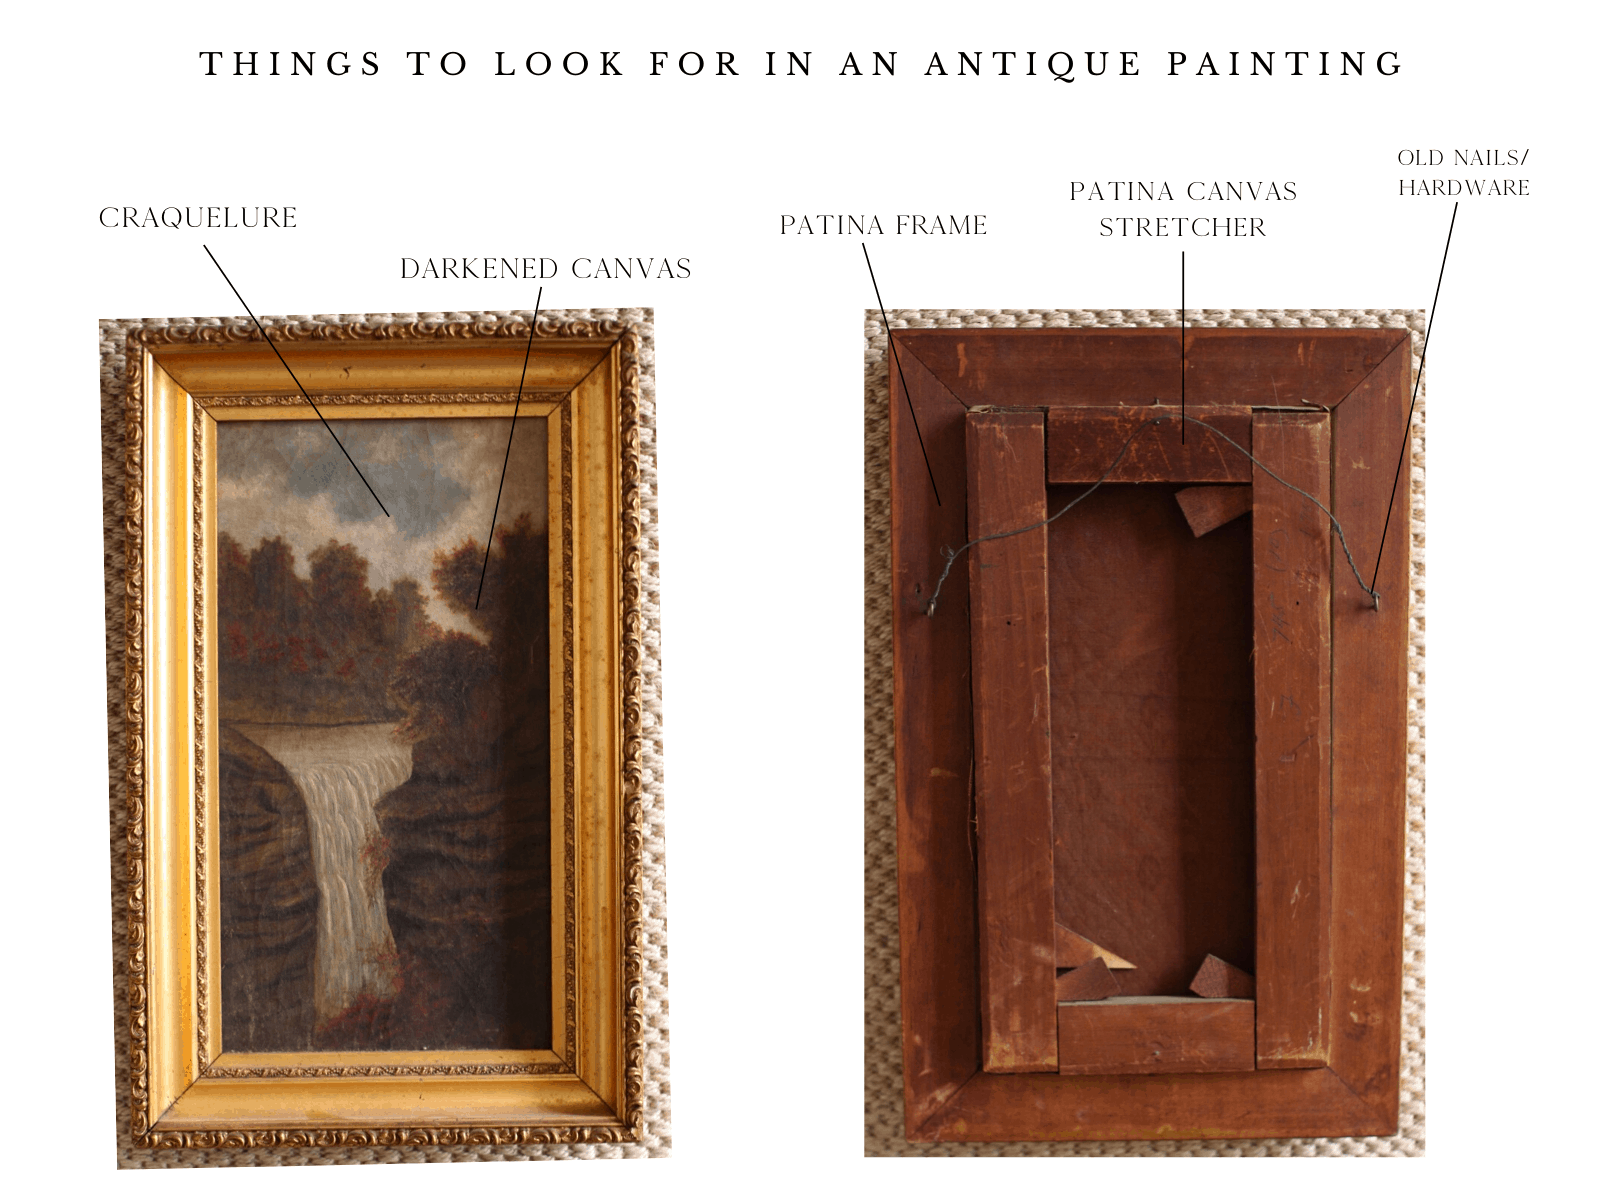 HOW-TO-SHOP-FOR-ANTIQUE-ART-ONLINE-EBAY-OIL-CANVAS